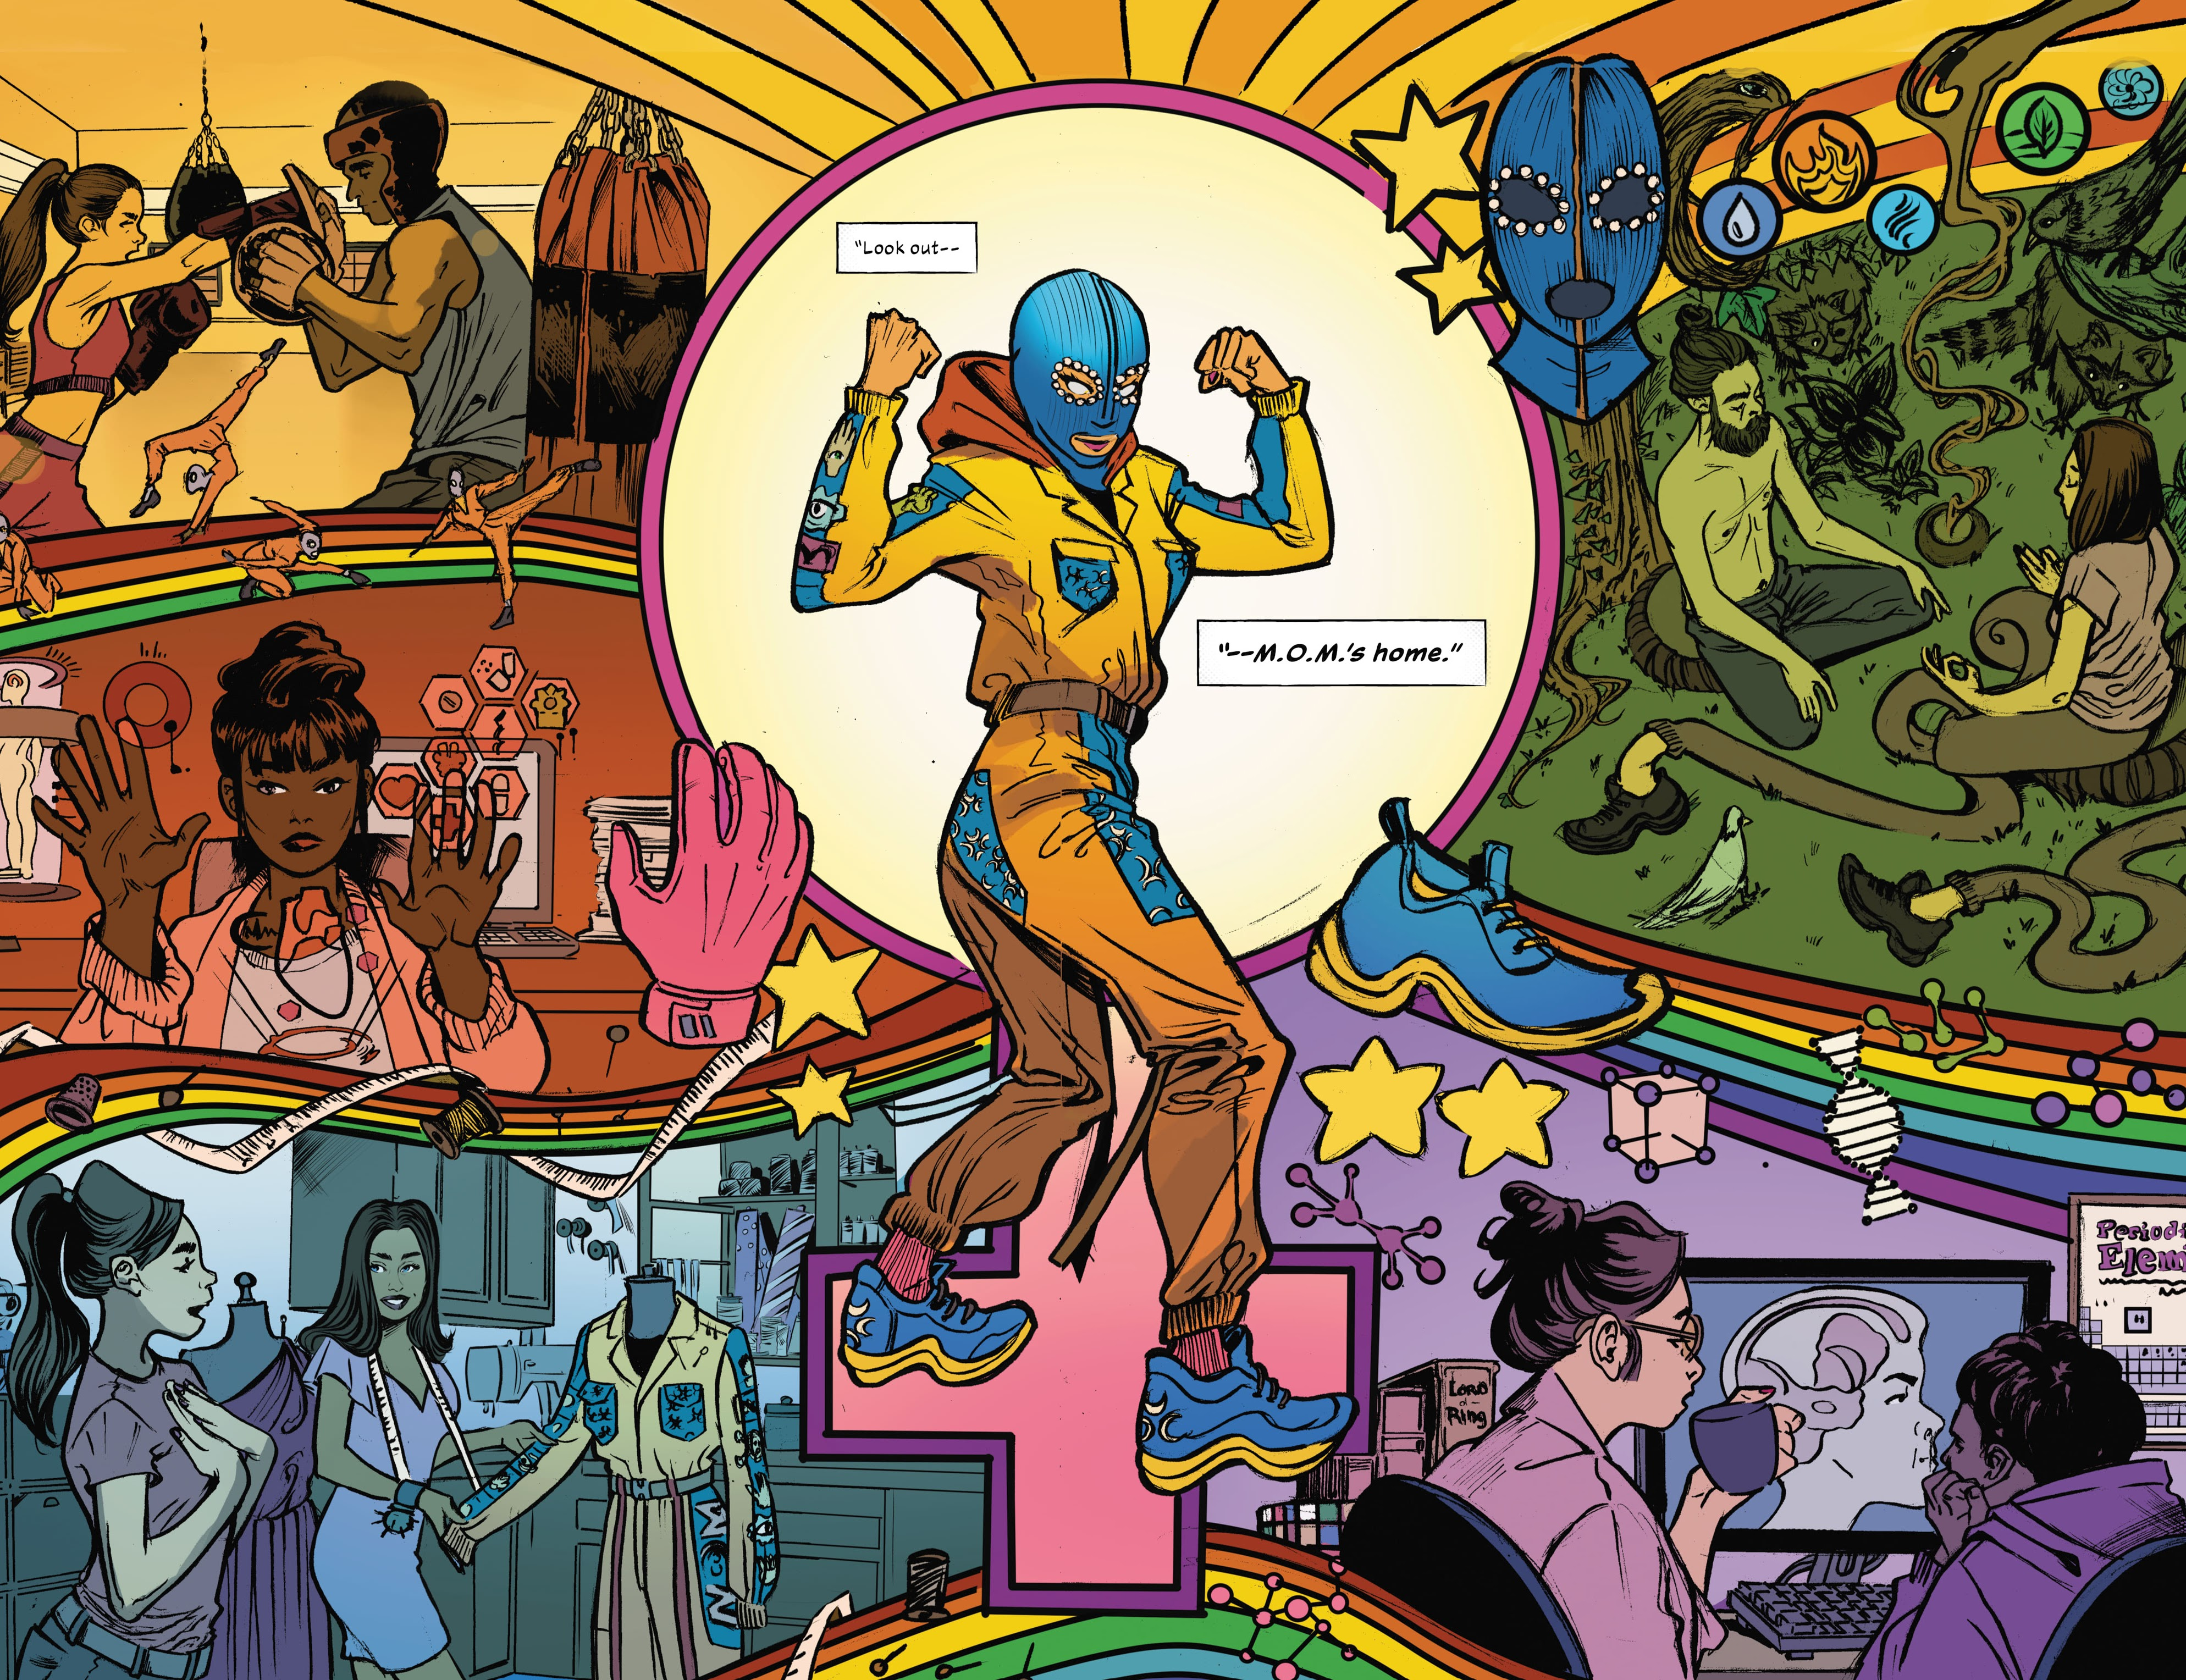 A comics panel showing Maya, star of comic book M.O.M: Mother of Madness